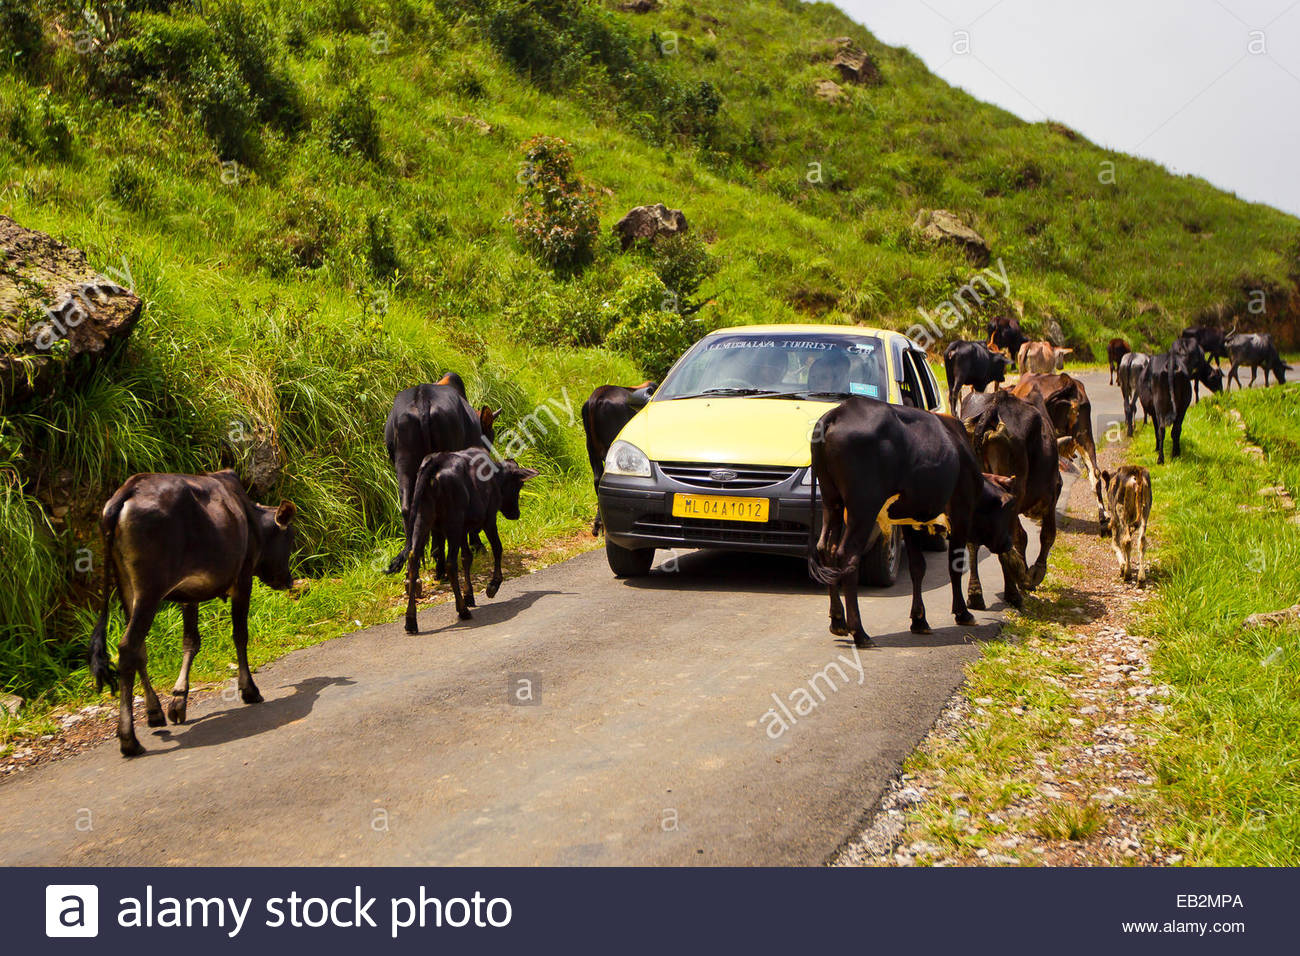 A taxi is forced to slow and beep his way through a herd of cattle walking on a rural road. - Stock Image